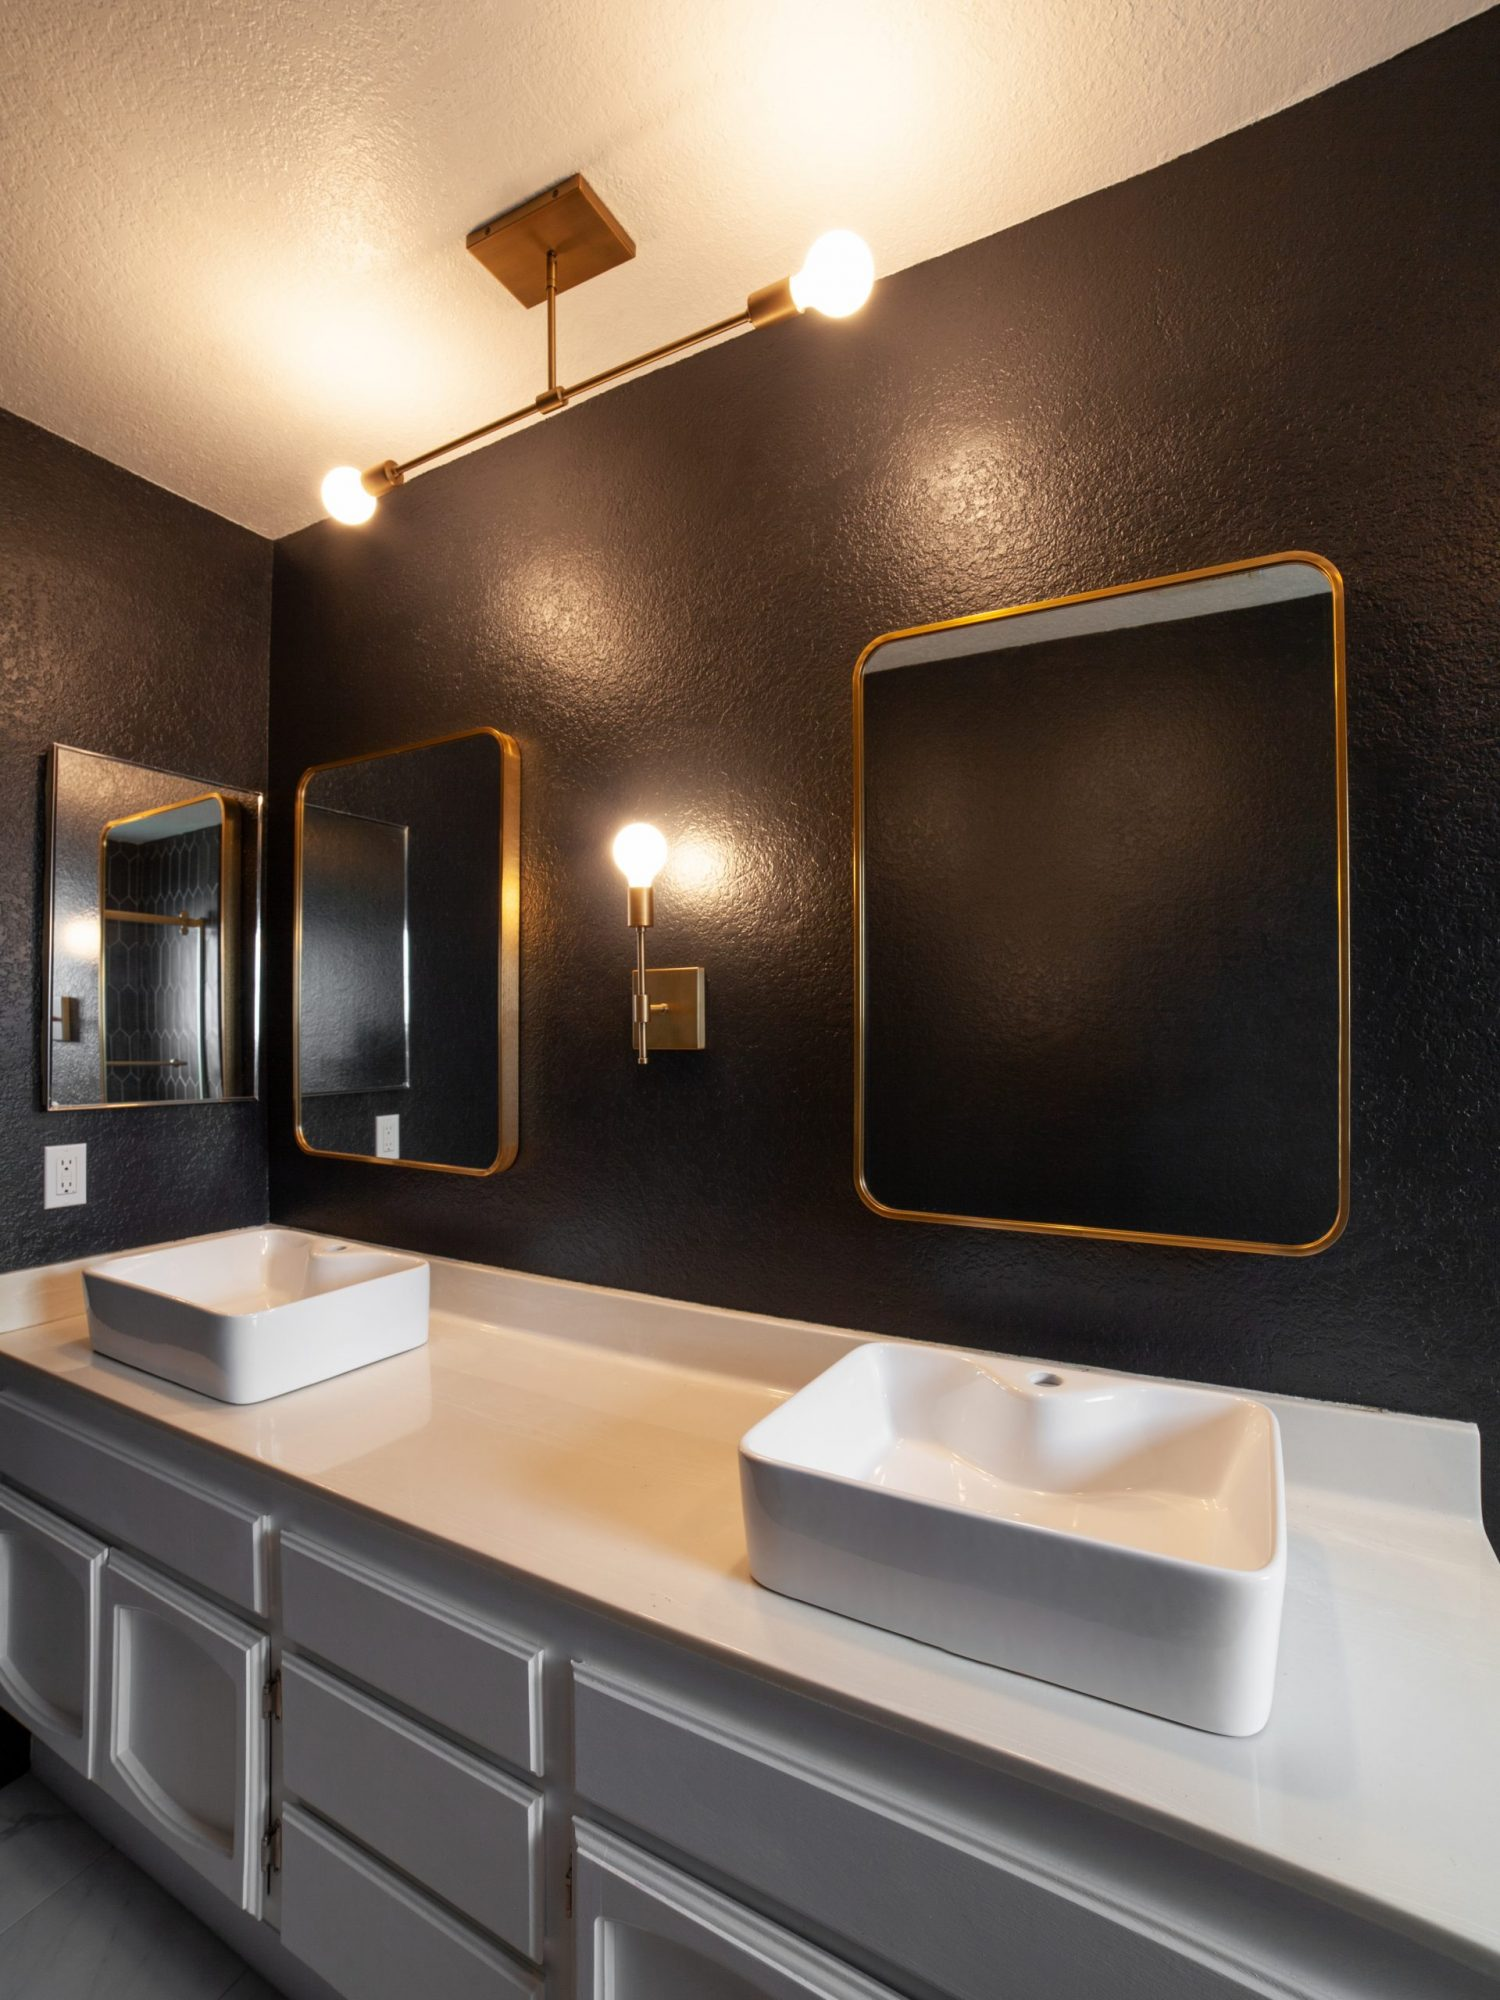 Black and white bathroom renovation with gold fixtures